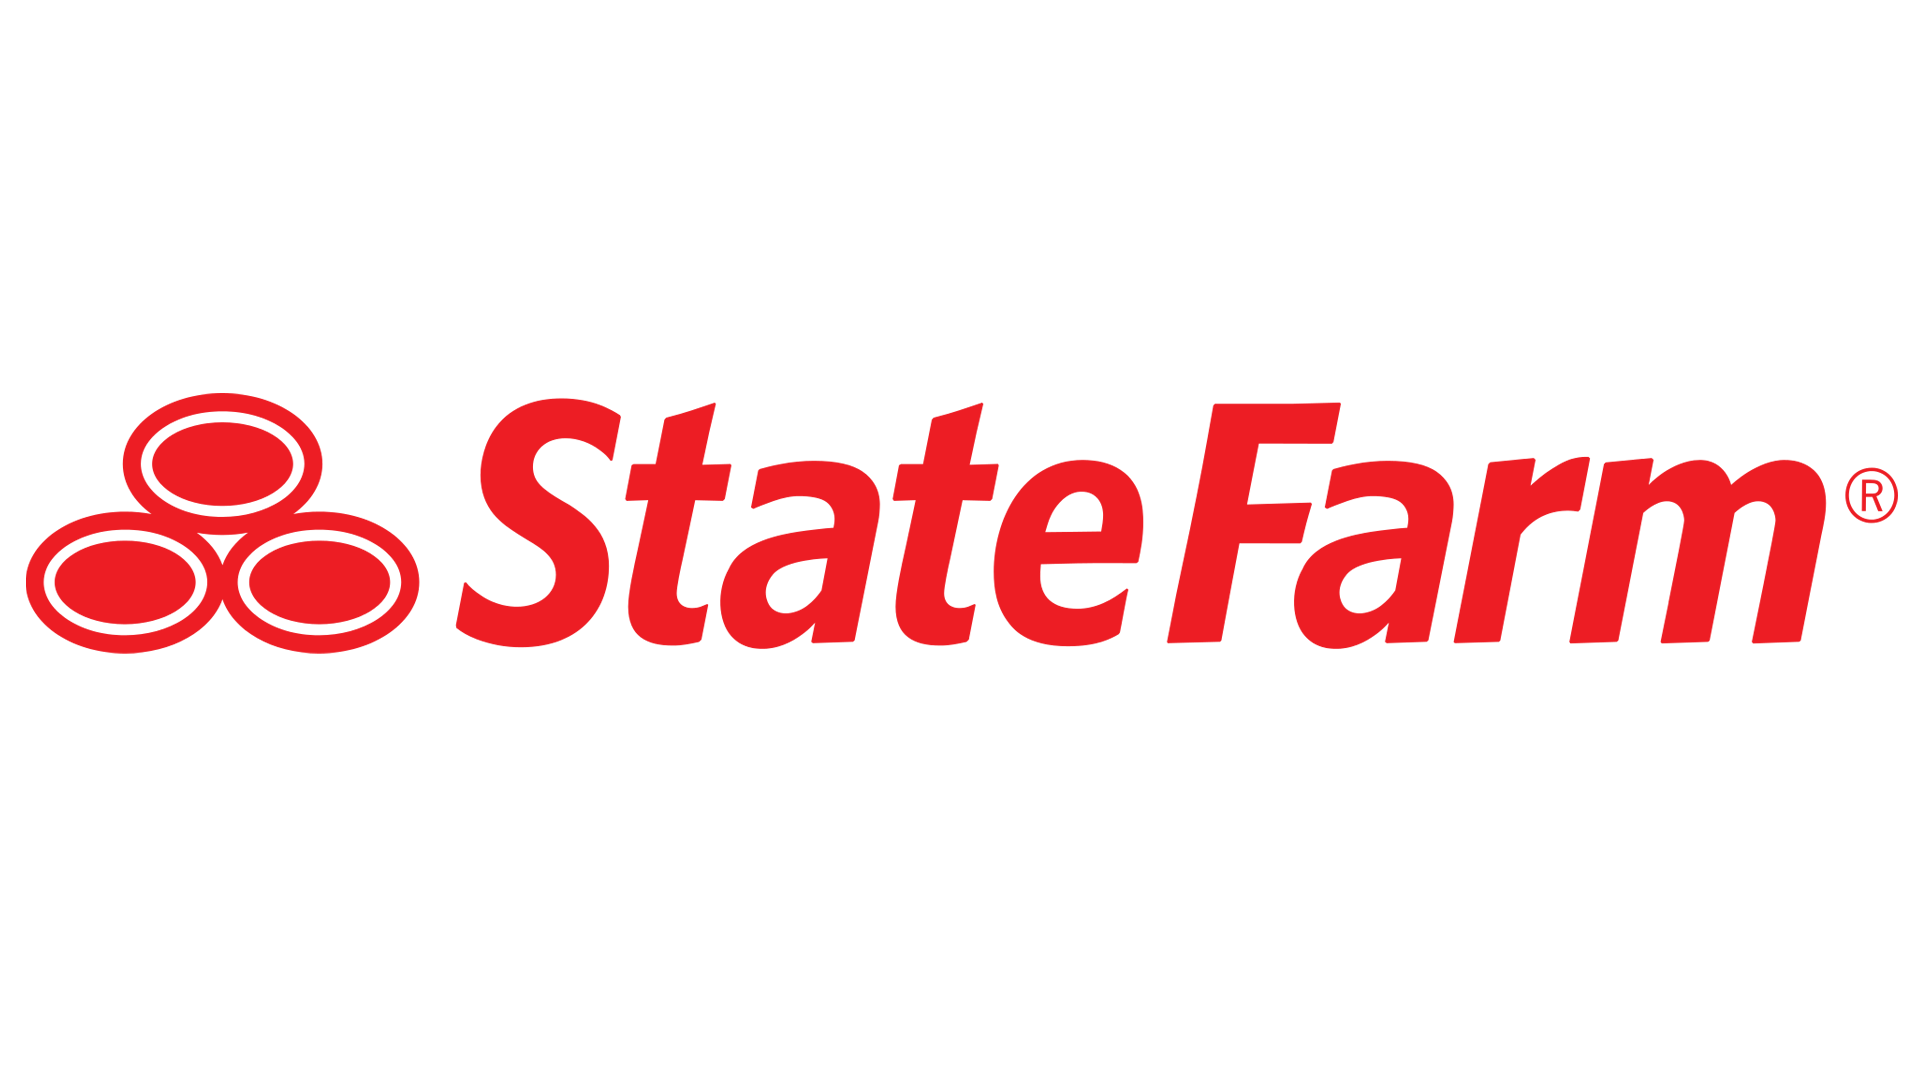 State farm logo png. Symbol meaning history and